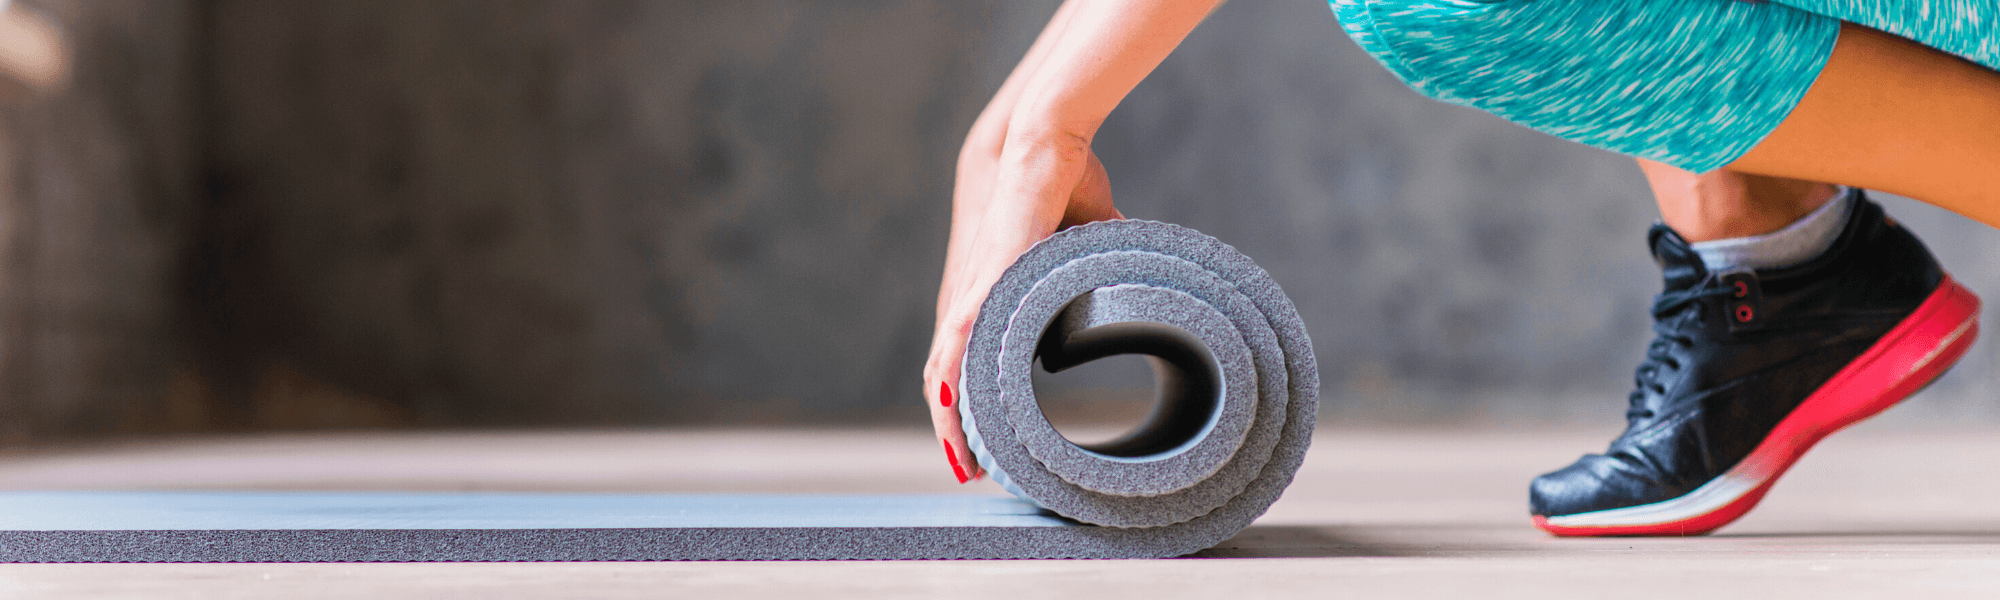 7 SIMPLE HOLIDAY EXERCISES: NO EQUIPMENT. 1 EPIC WORKOUT.